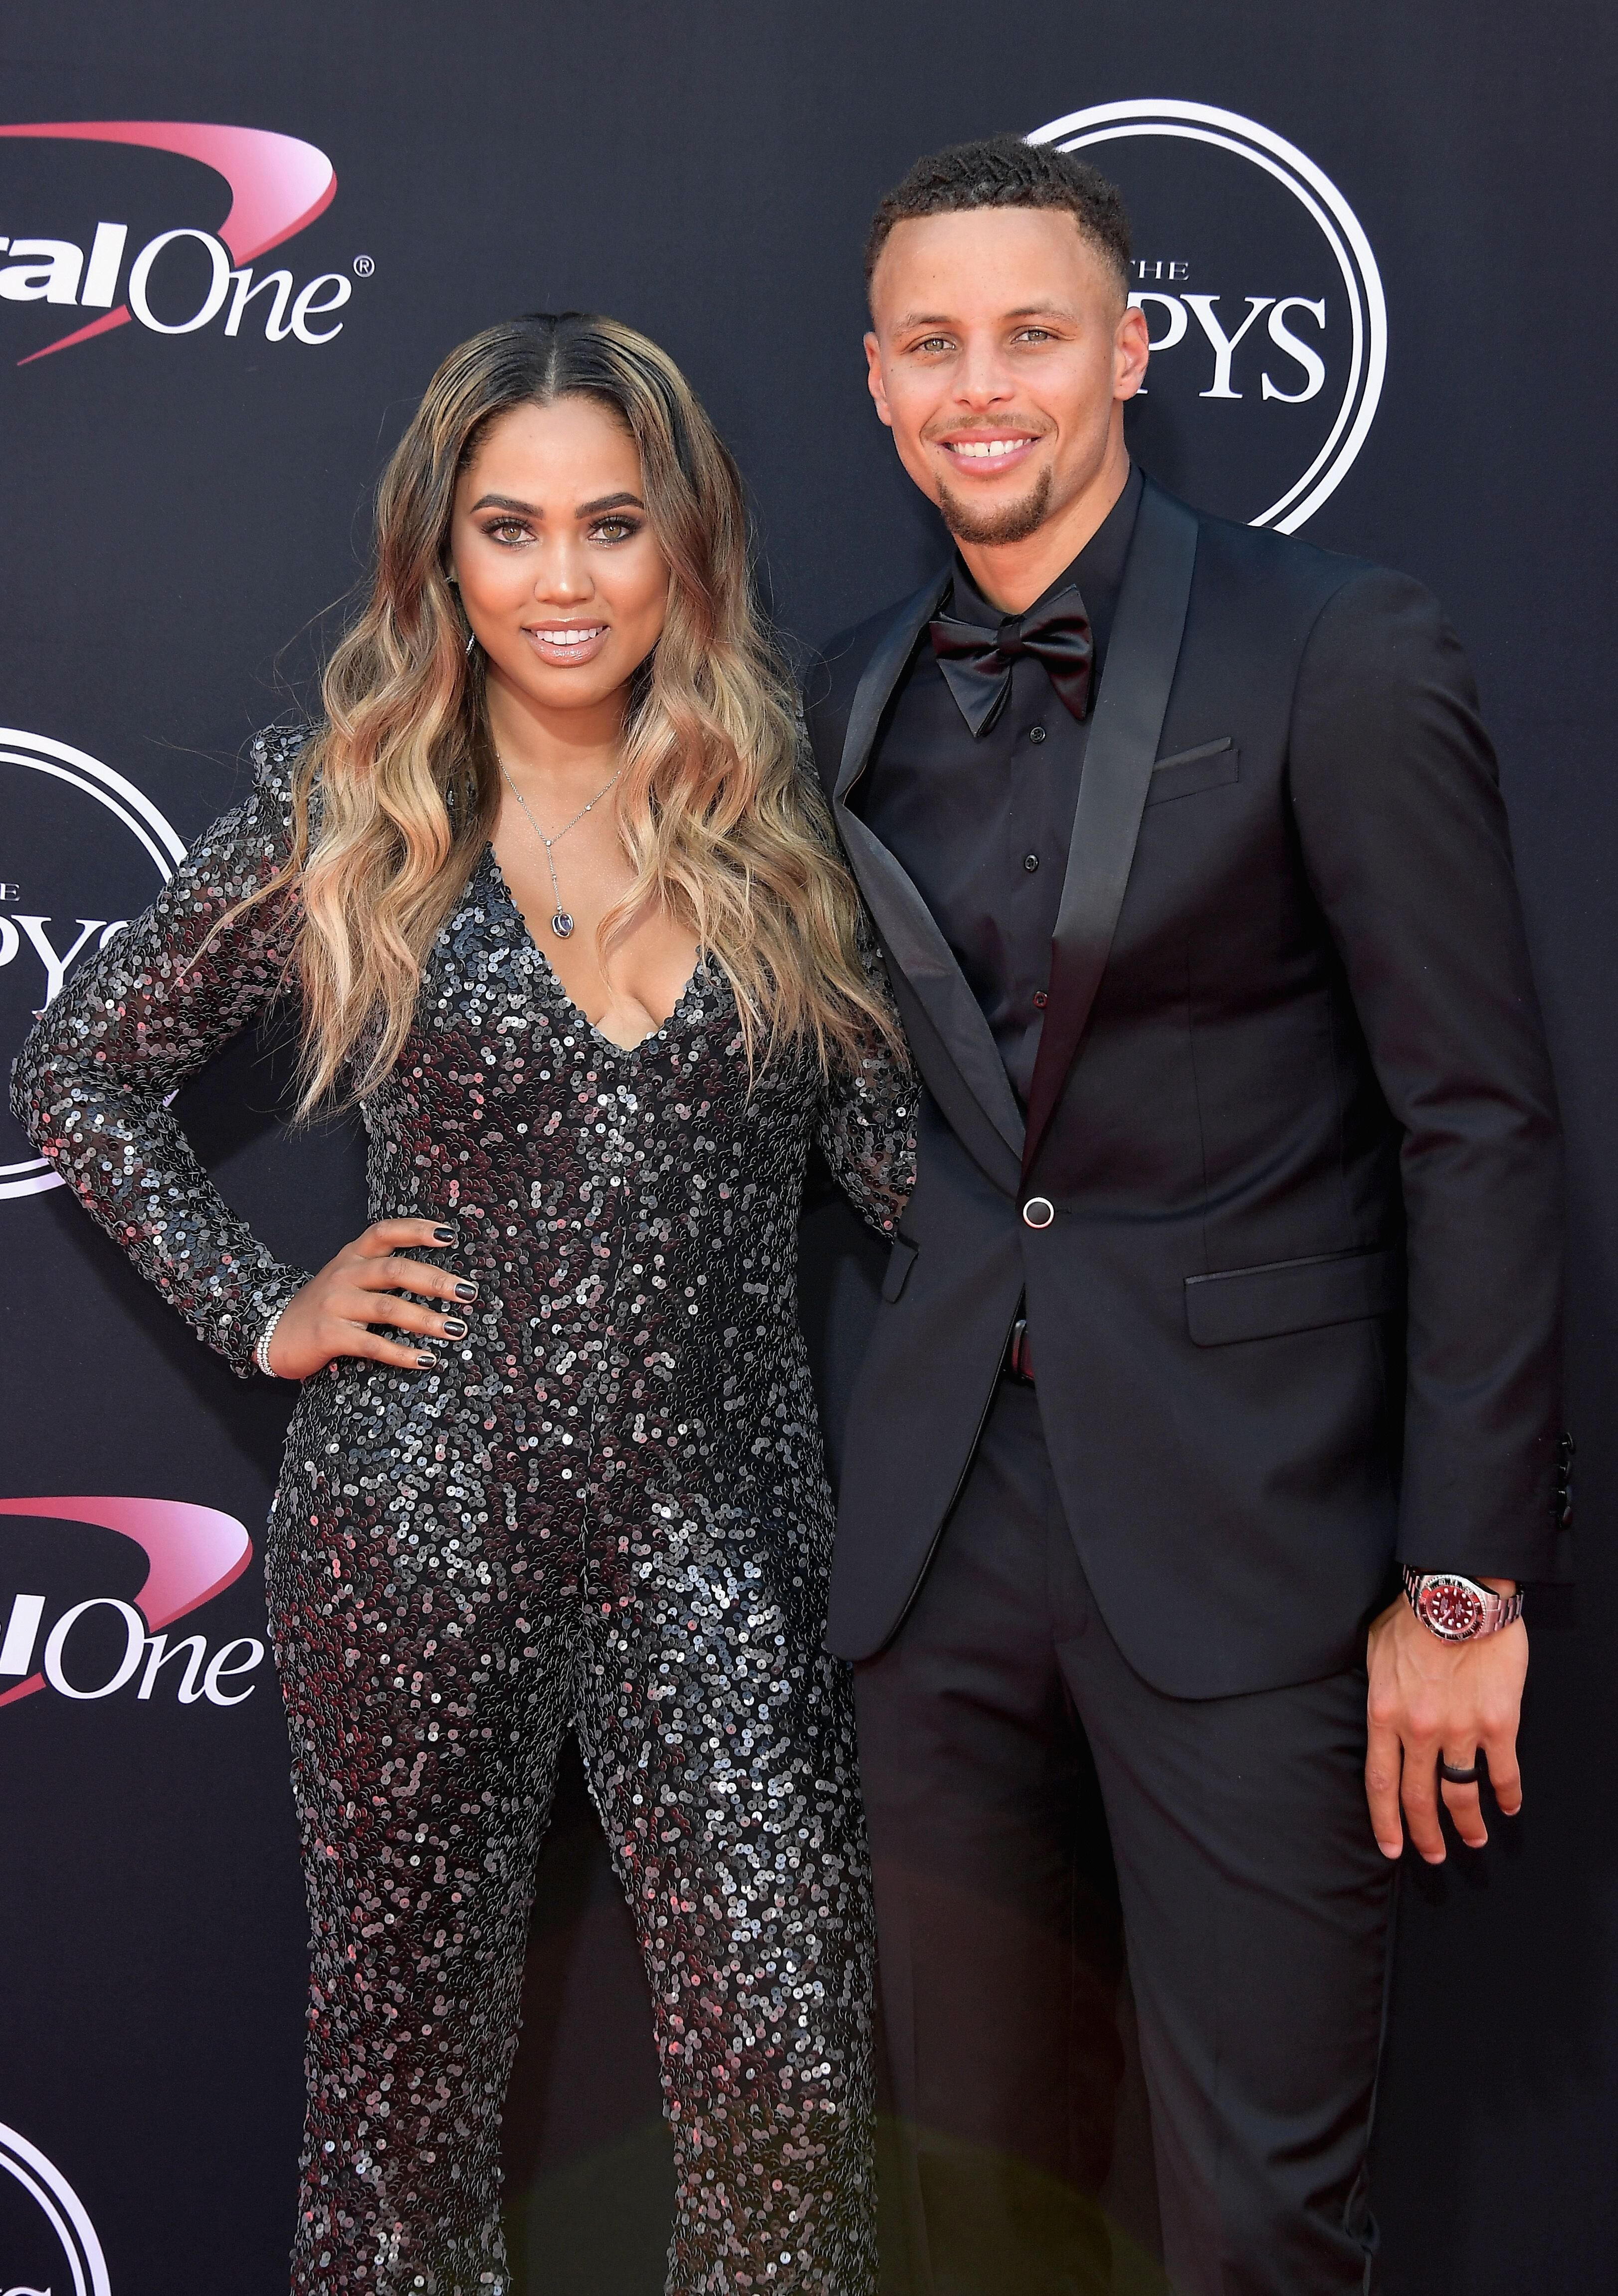 Steph Curry and Ayesha Curry at The ESPYS at Microsoft Theater on July 12, 2017 in Los Angeles, California | Photo: Getty Images